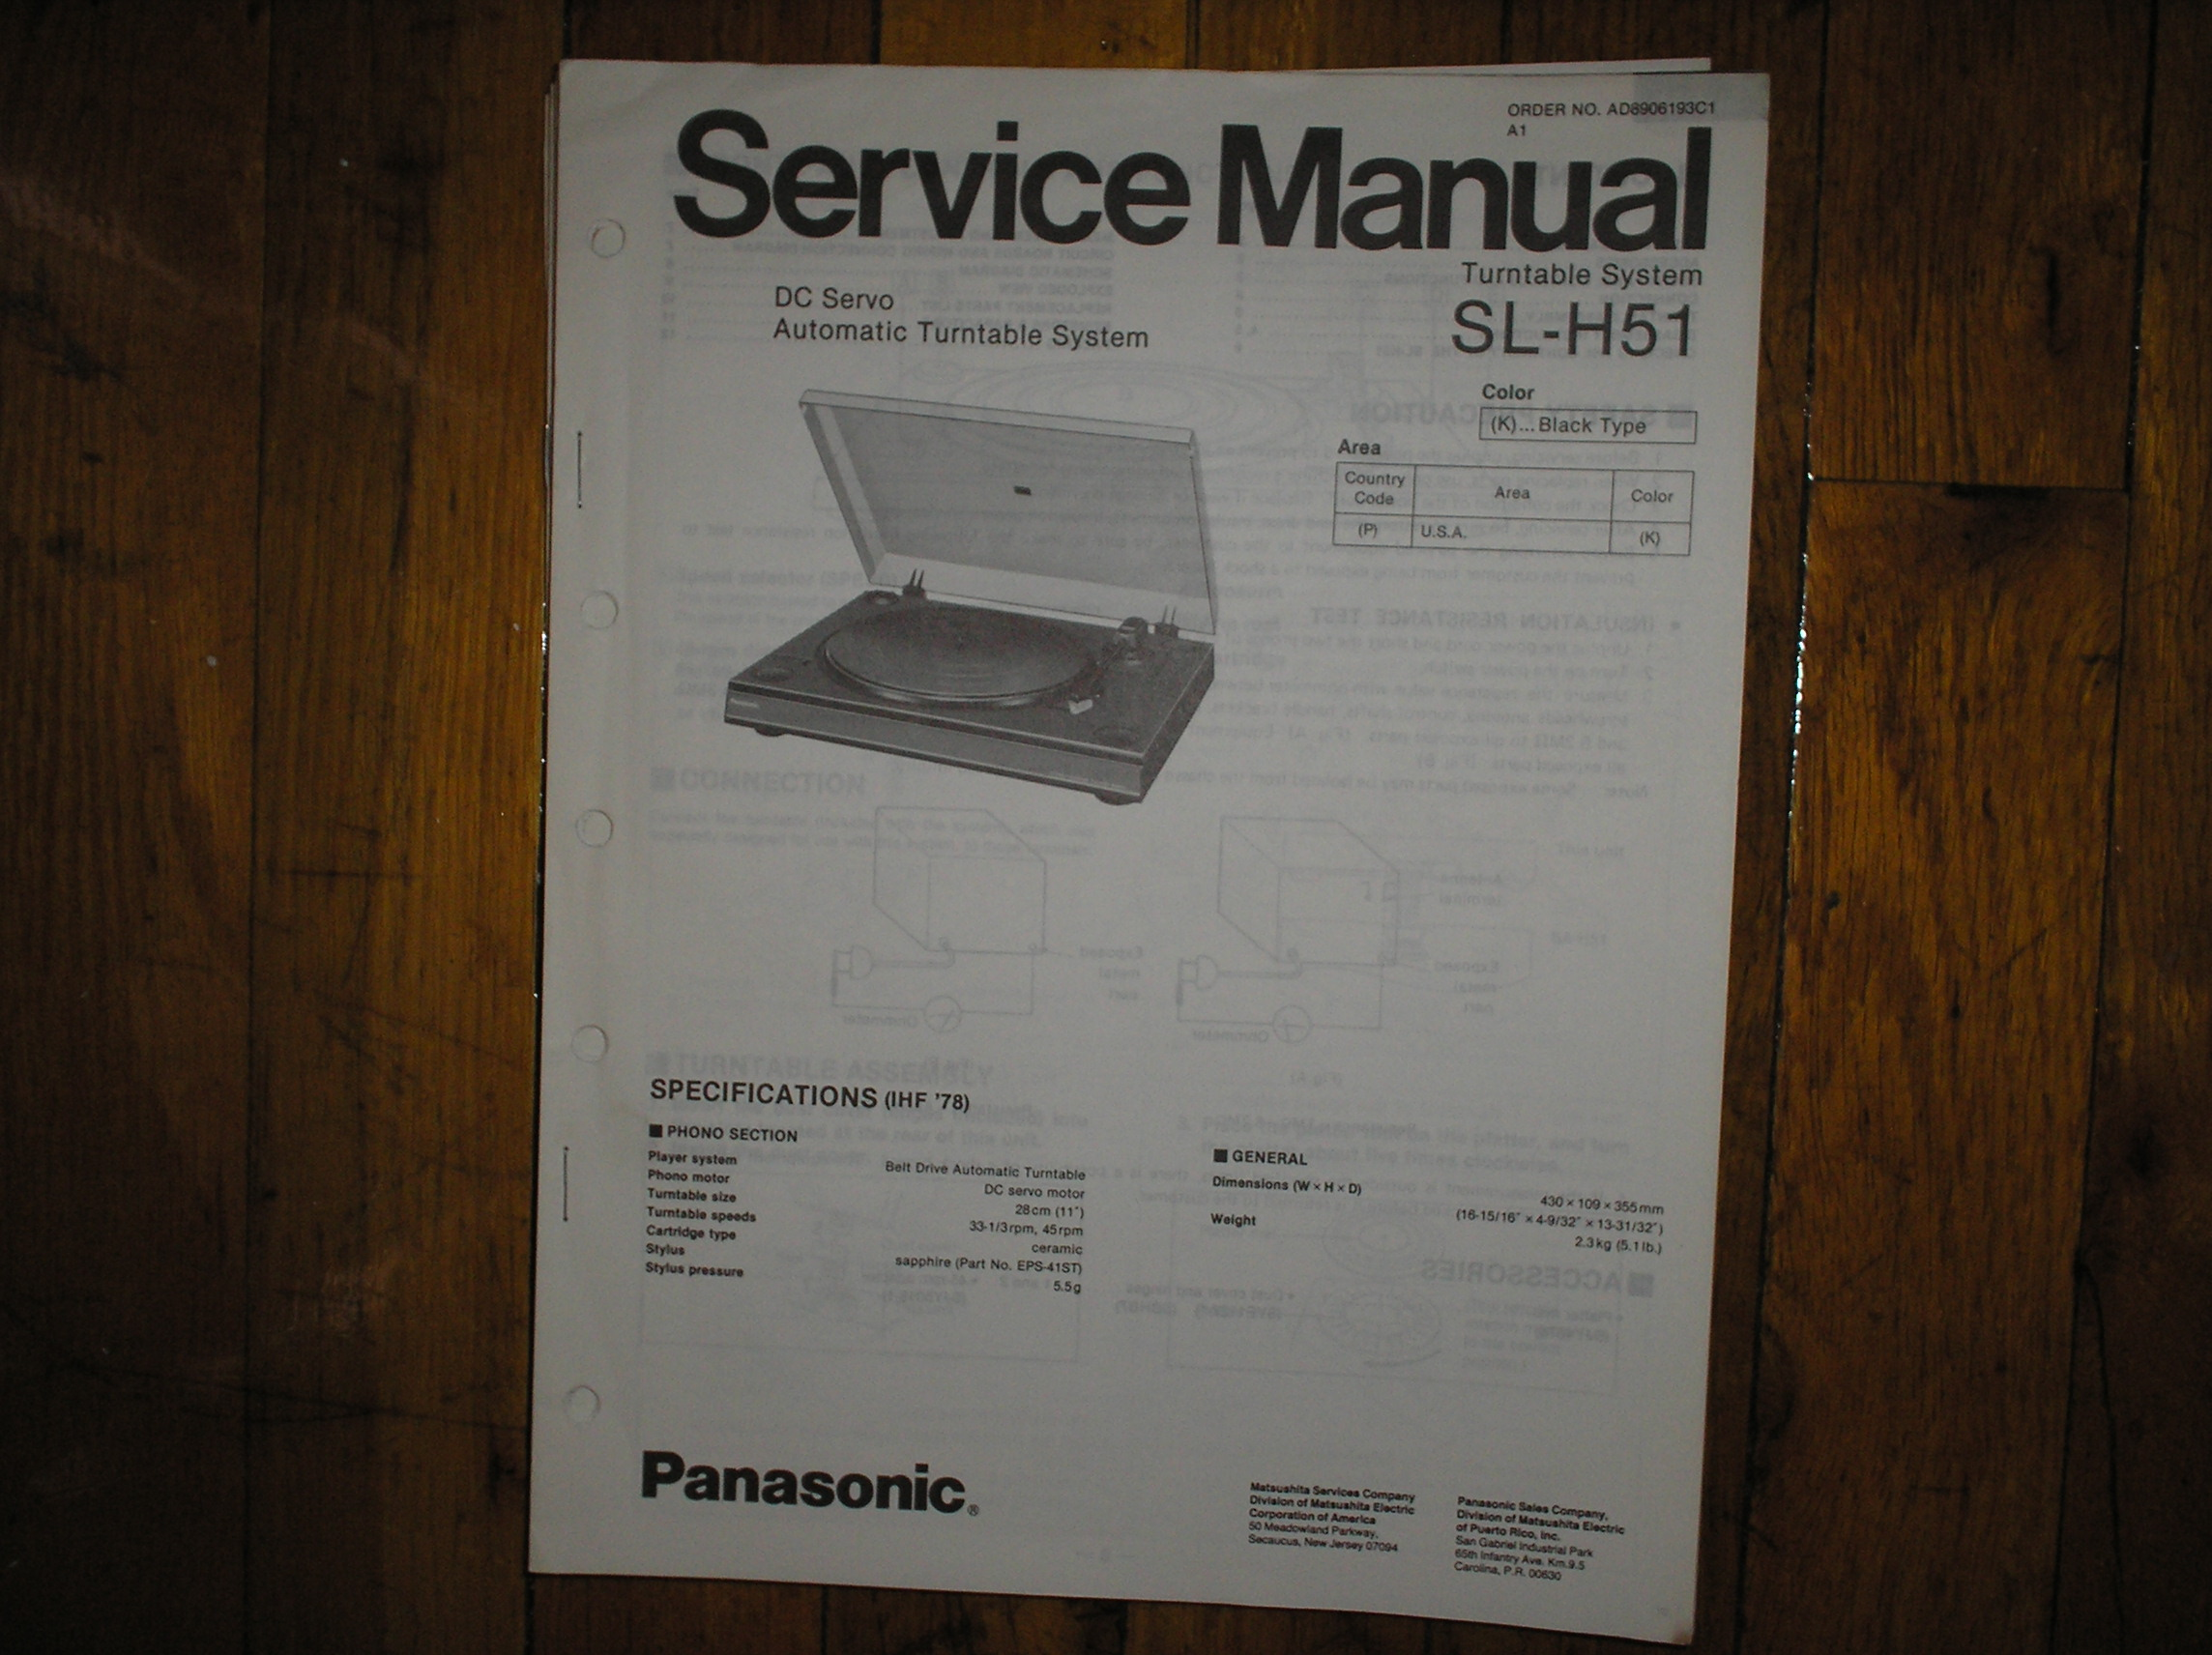 SL-H51 Turntable Service Manual